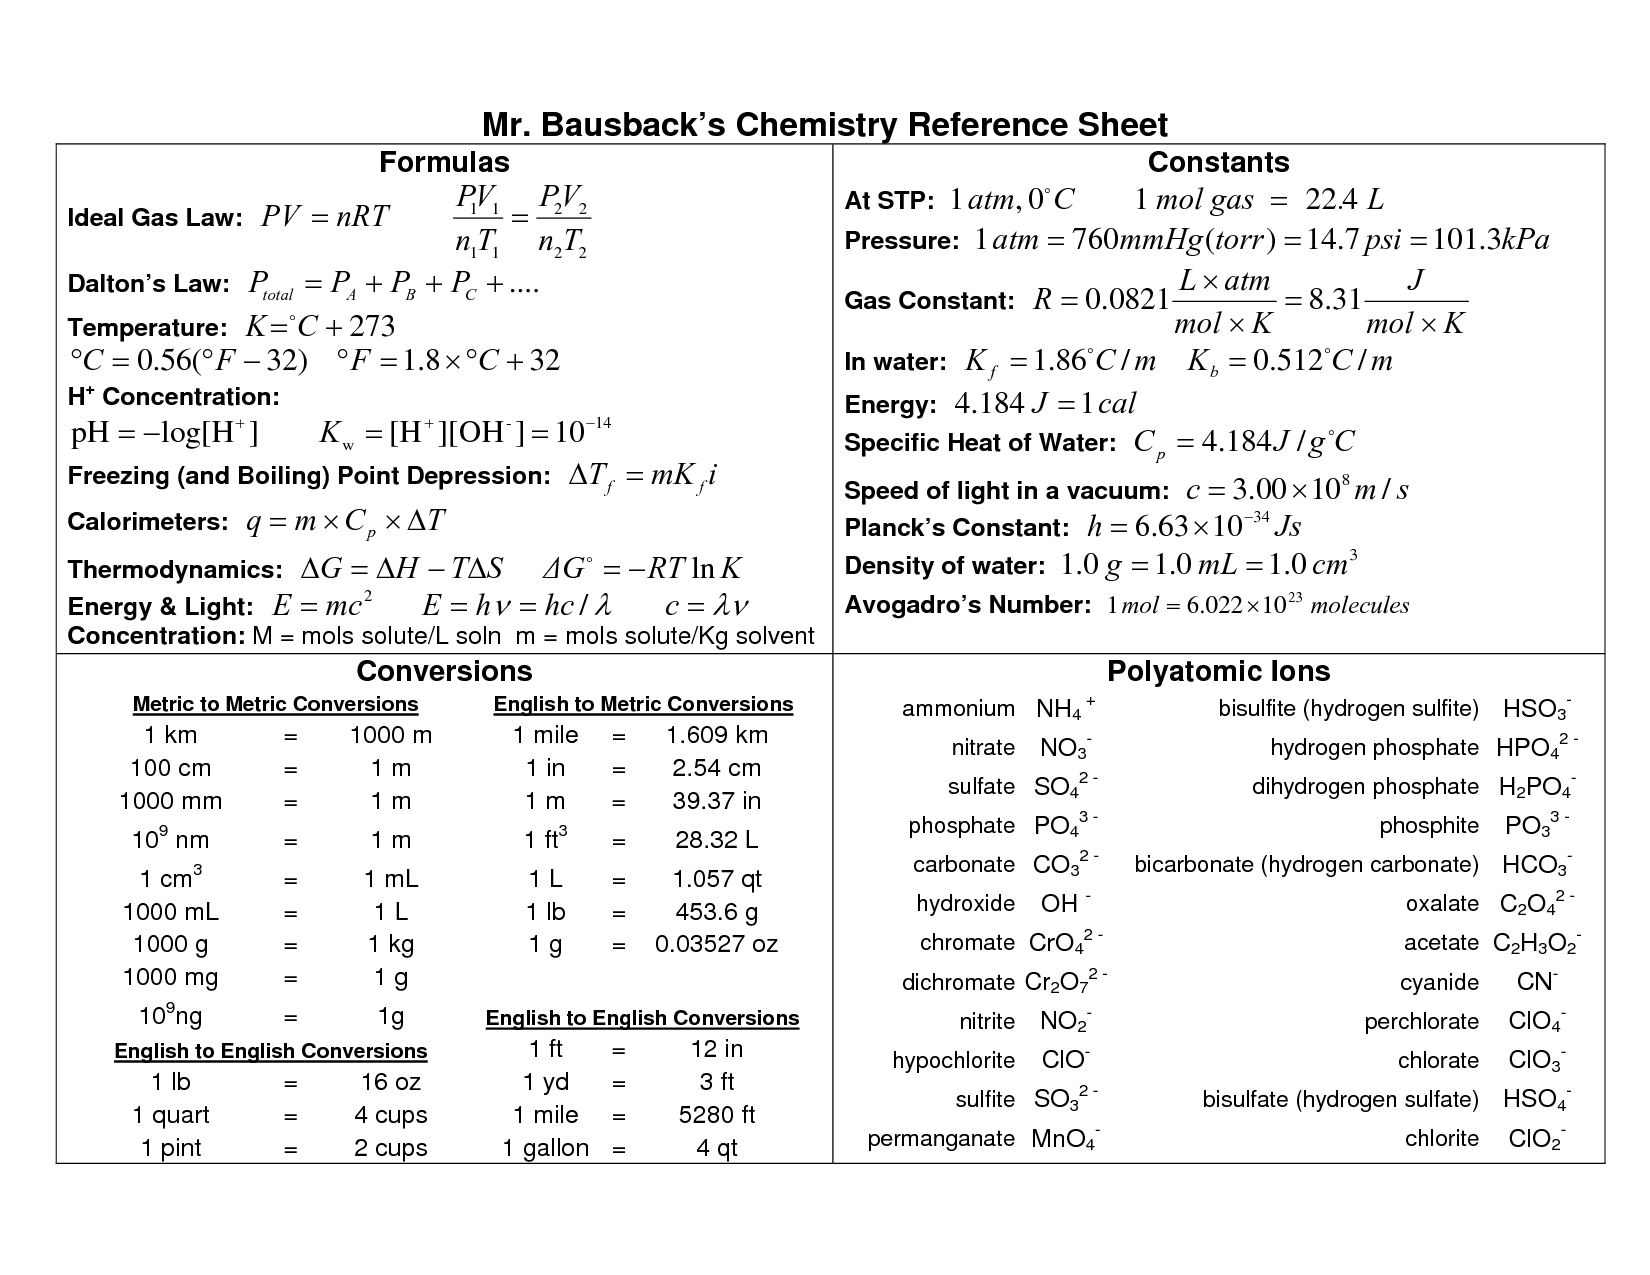 high school chemistry formula sheet chemistry reference sheet chemistry pinterest high. Black Bedroom Furniture Sets. Home Design Ideas